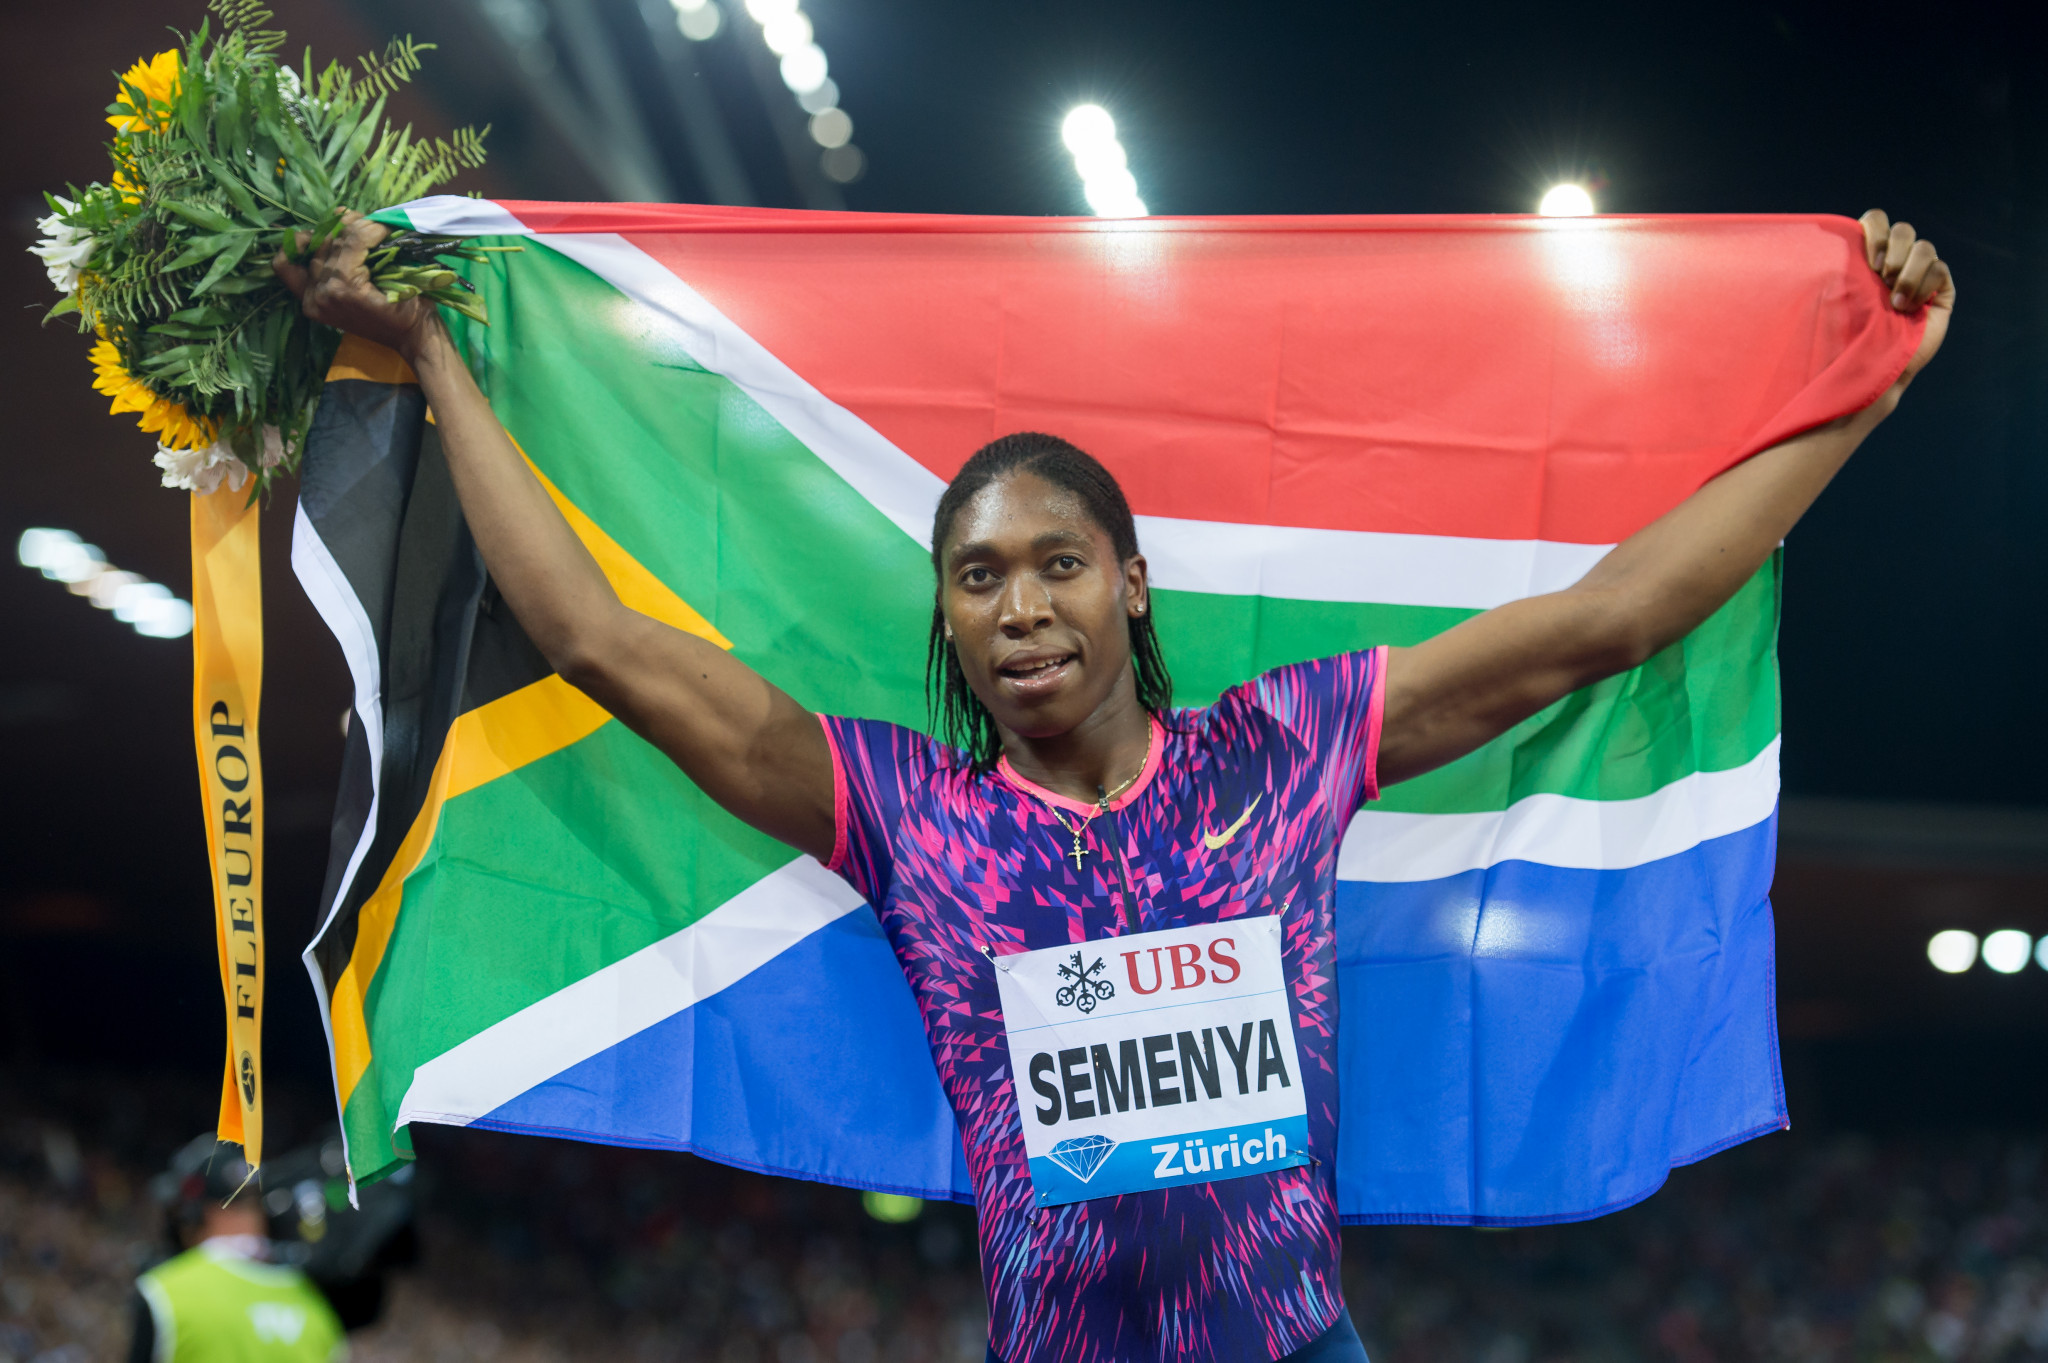 Semenya and Manyonga lead contenders for South African athletics team at Gold Coast 2018